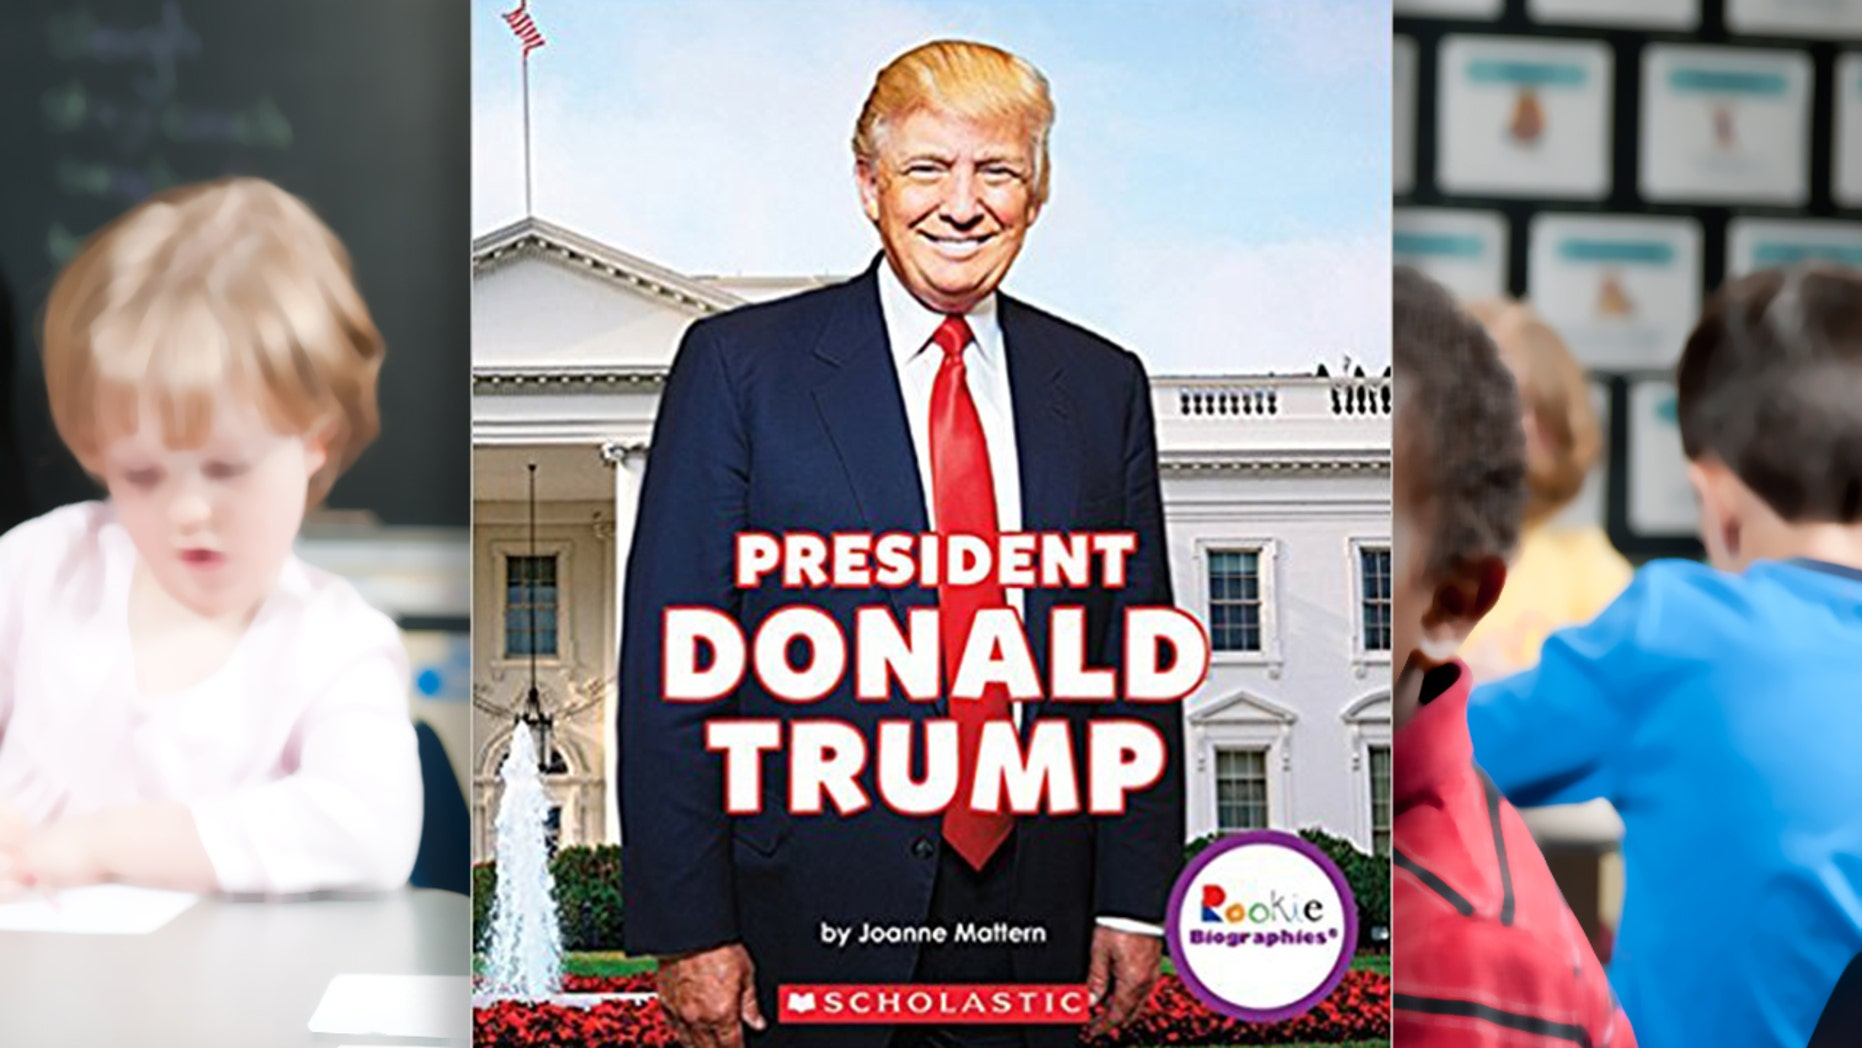 """Liberals are launching a campaign to recall Scholastic's children's book, """"President Donald Trump"""" from their store for being """"dangerous"""" and omitting negative information about the commander-in-chief."""